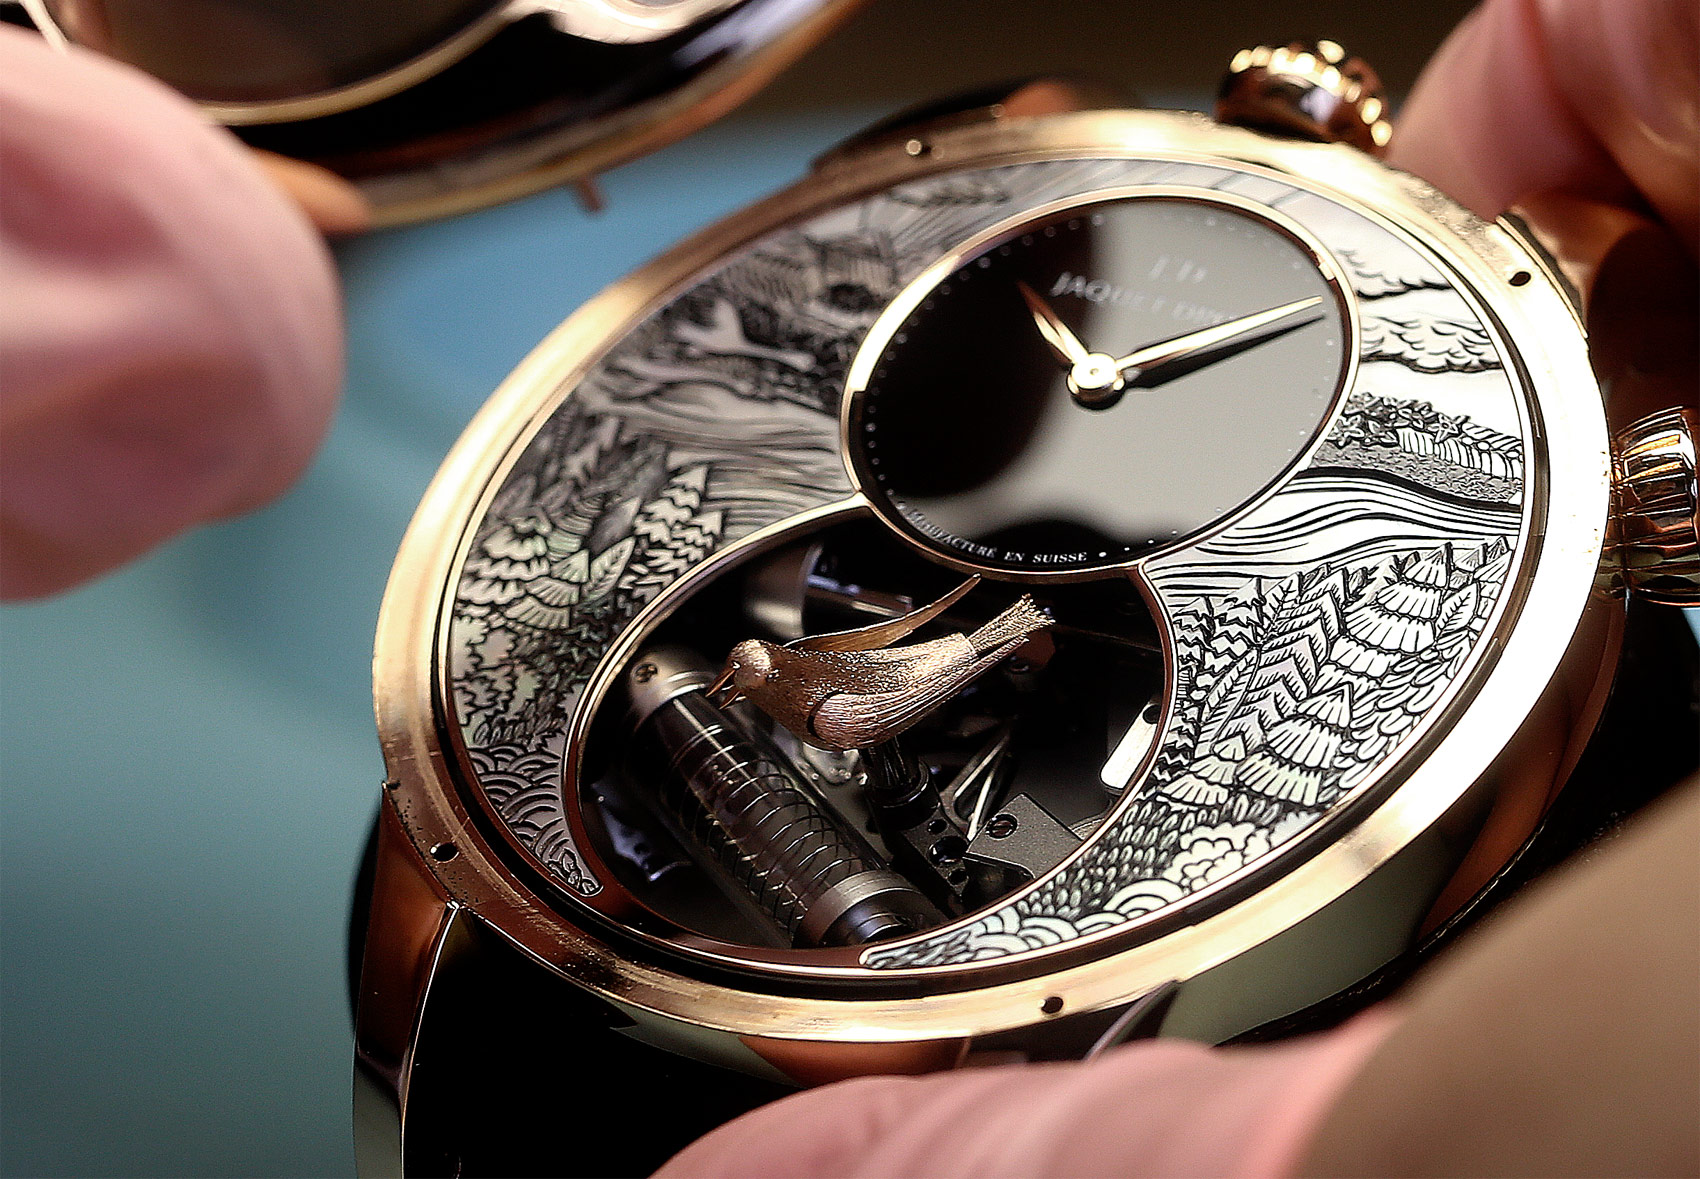 The Jaquet Droz Charming Bird – The Art Of Nature At Its Peak